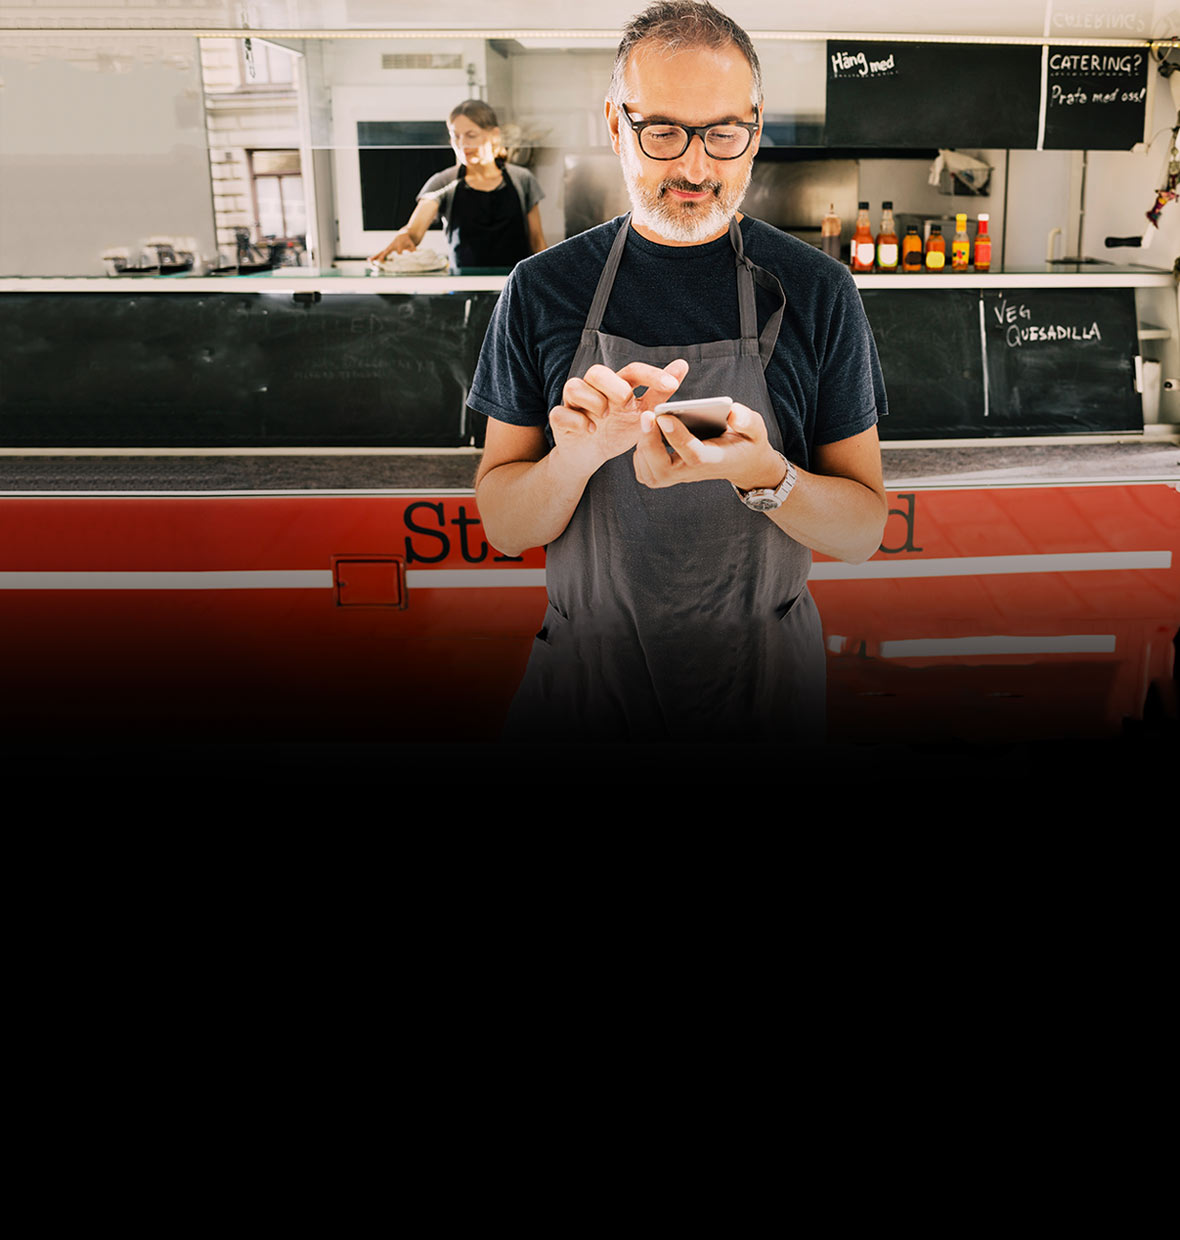 Travel Card Commbank: PayID For Small Business Owners